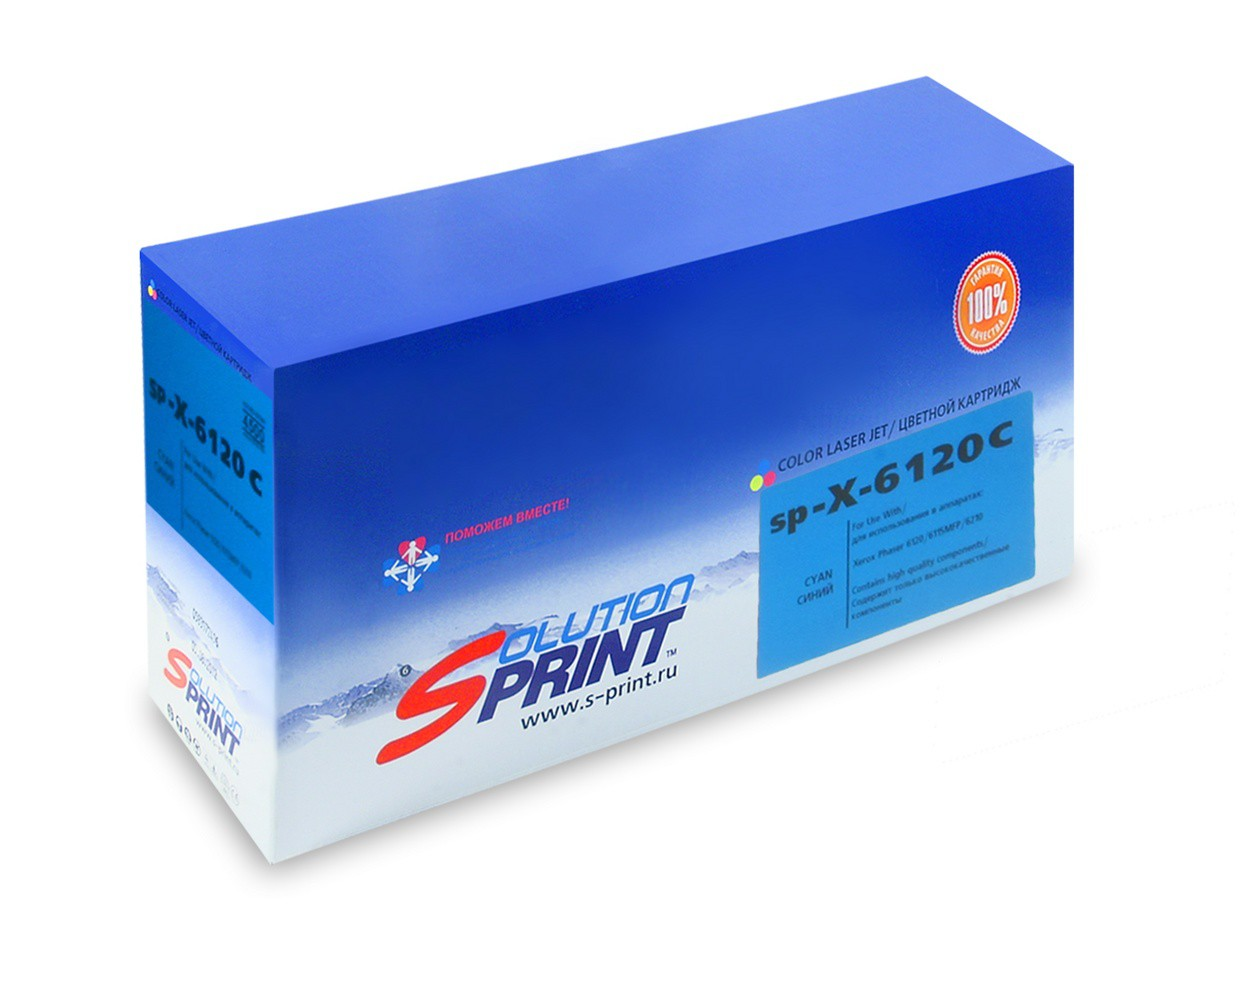 Картридж лазерный SolutionPrint SP-X-6120C (4500 коп.; Xerox Phaser 6115/ 6120; синий)